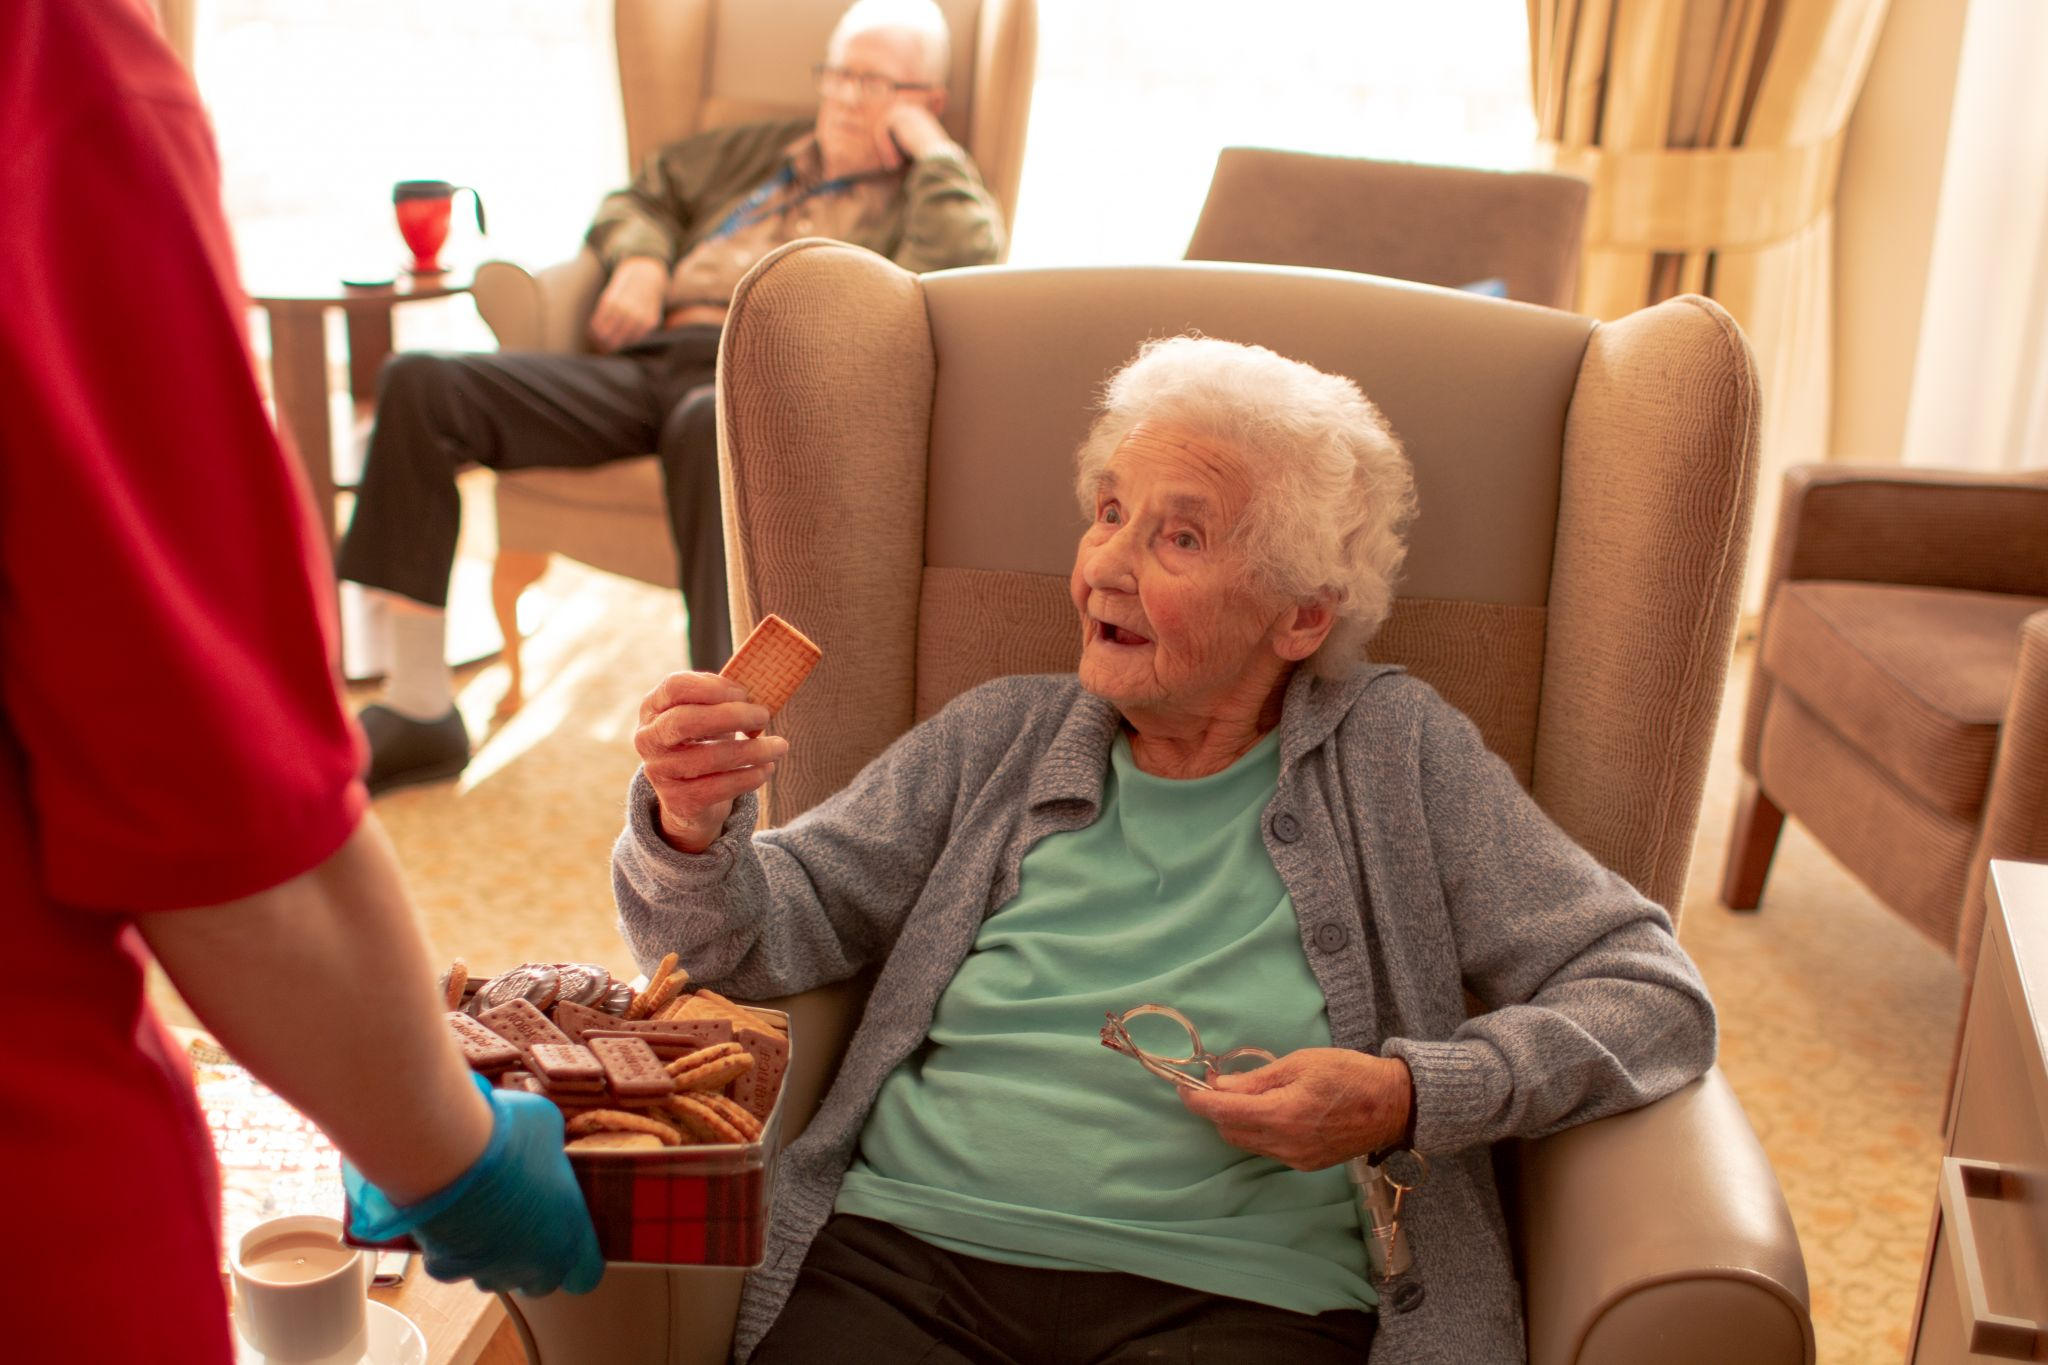 craig healthcare residents lifestyle photography hannah layford biscuits